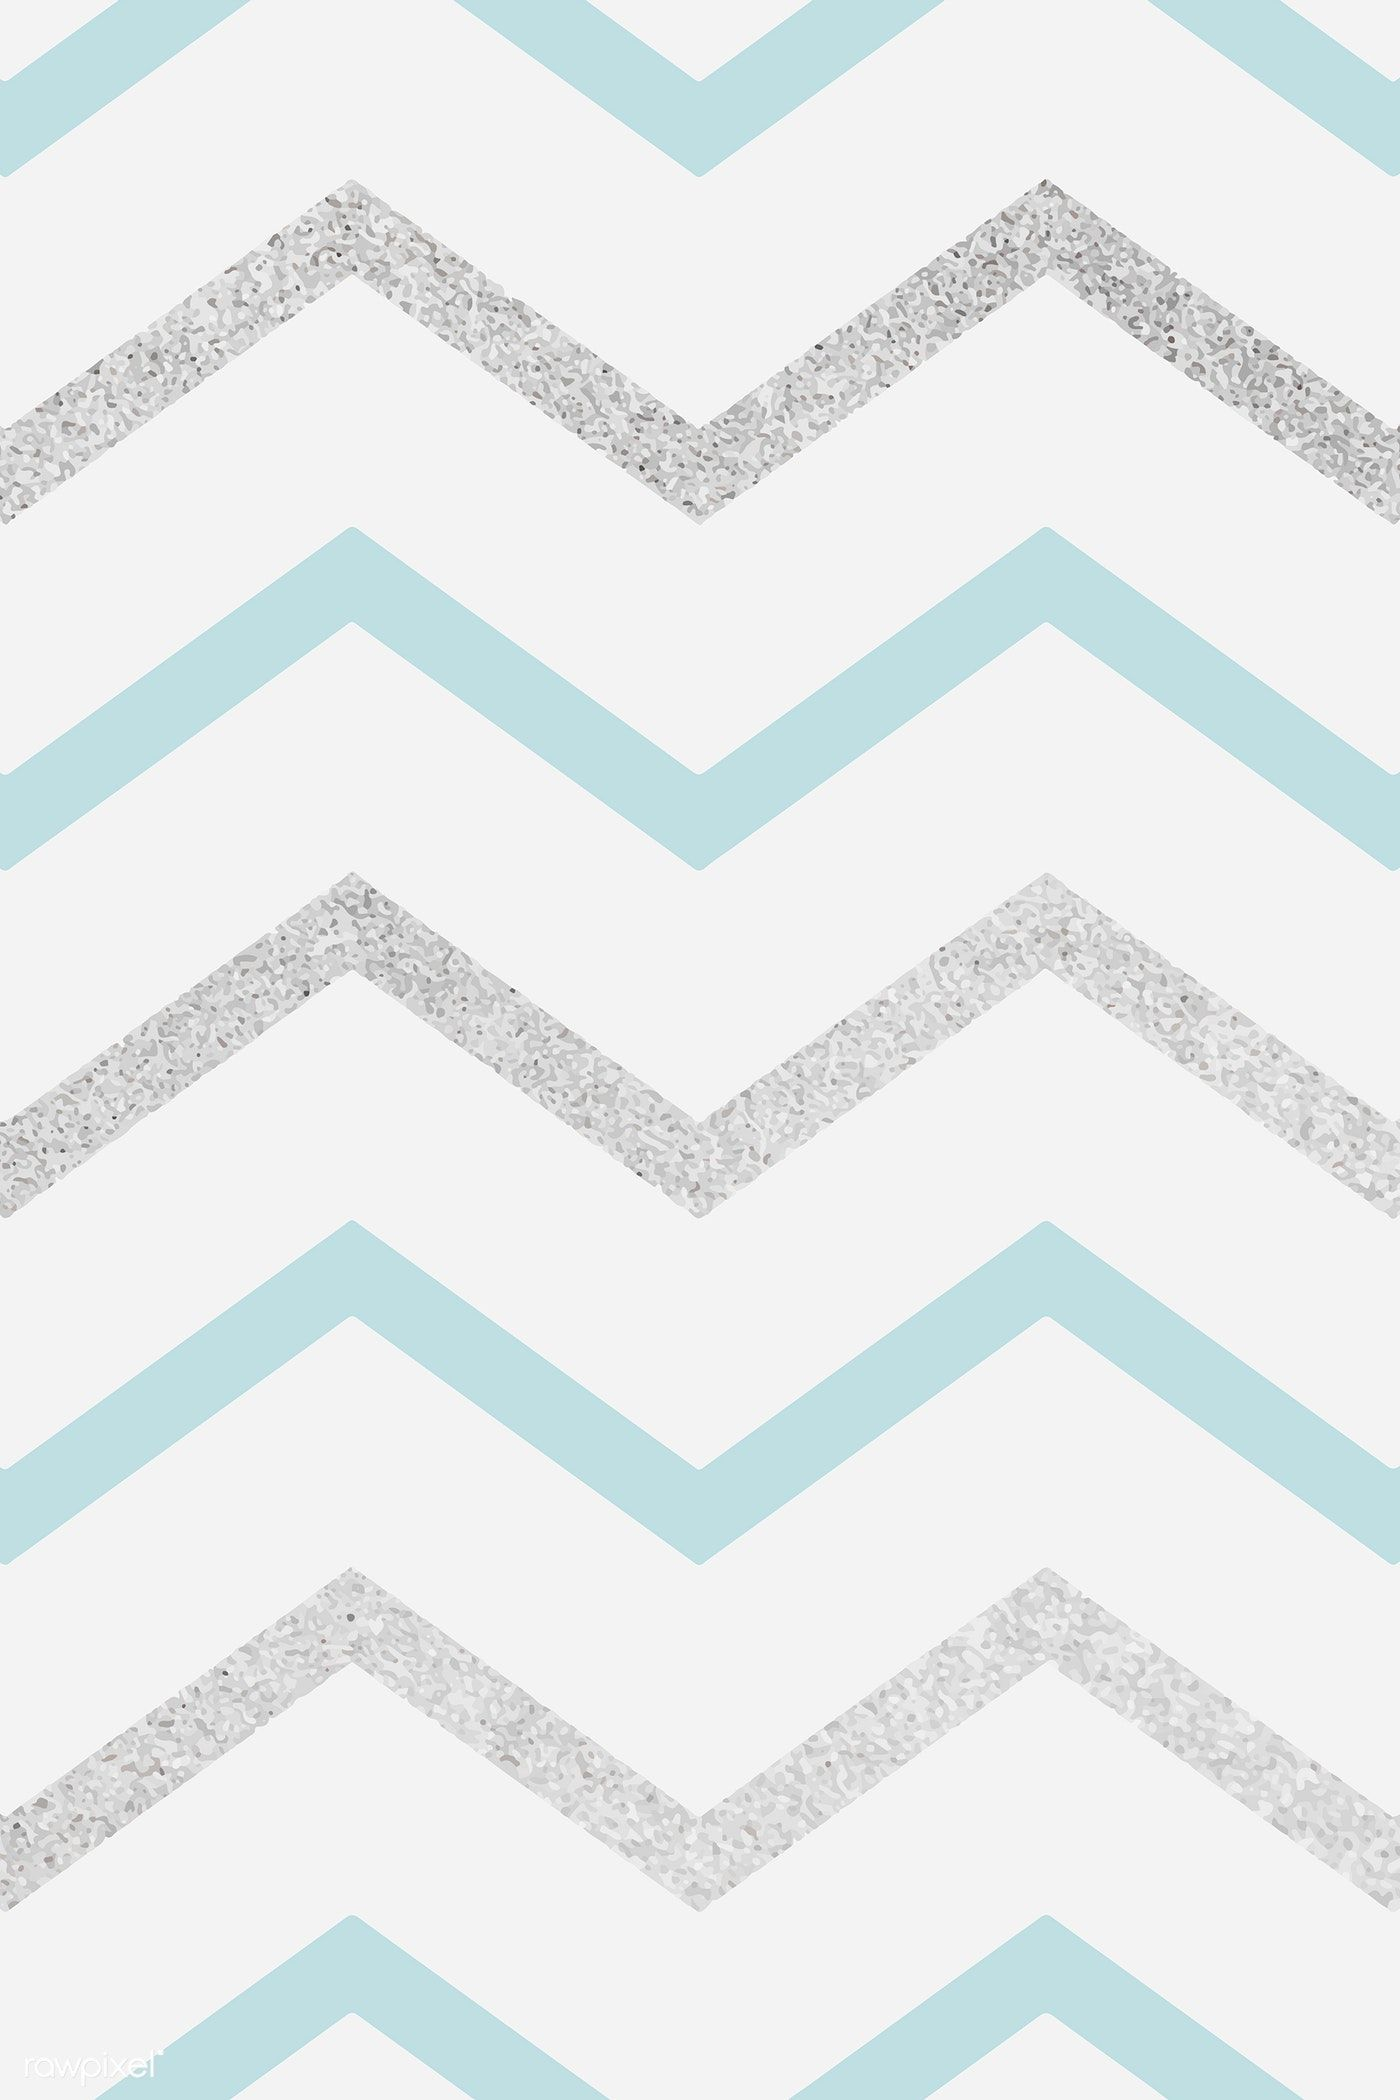 Download Premium Vector Of Blue And Silver Glittery Zigzag Patterned Sparkle Wallpaper Vector Patterns Design Background Patterns